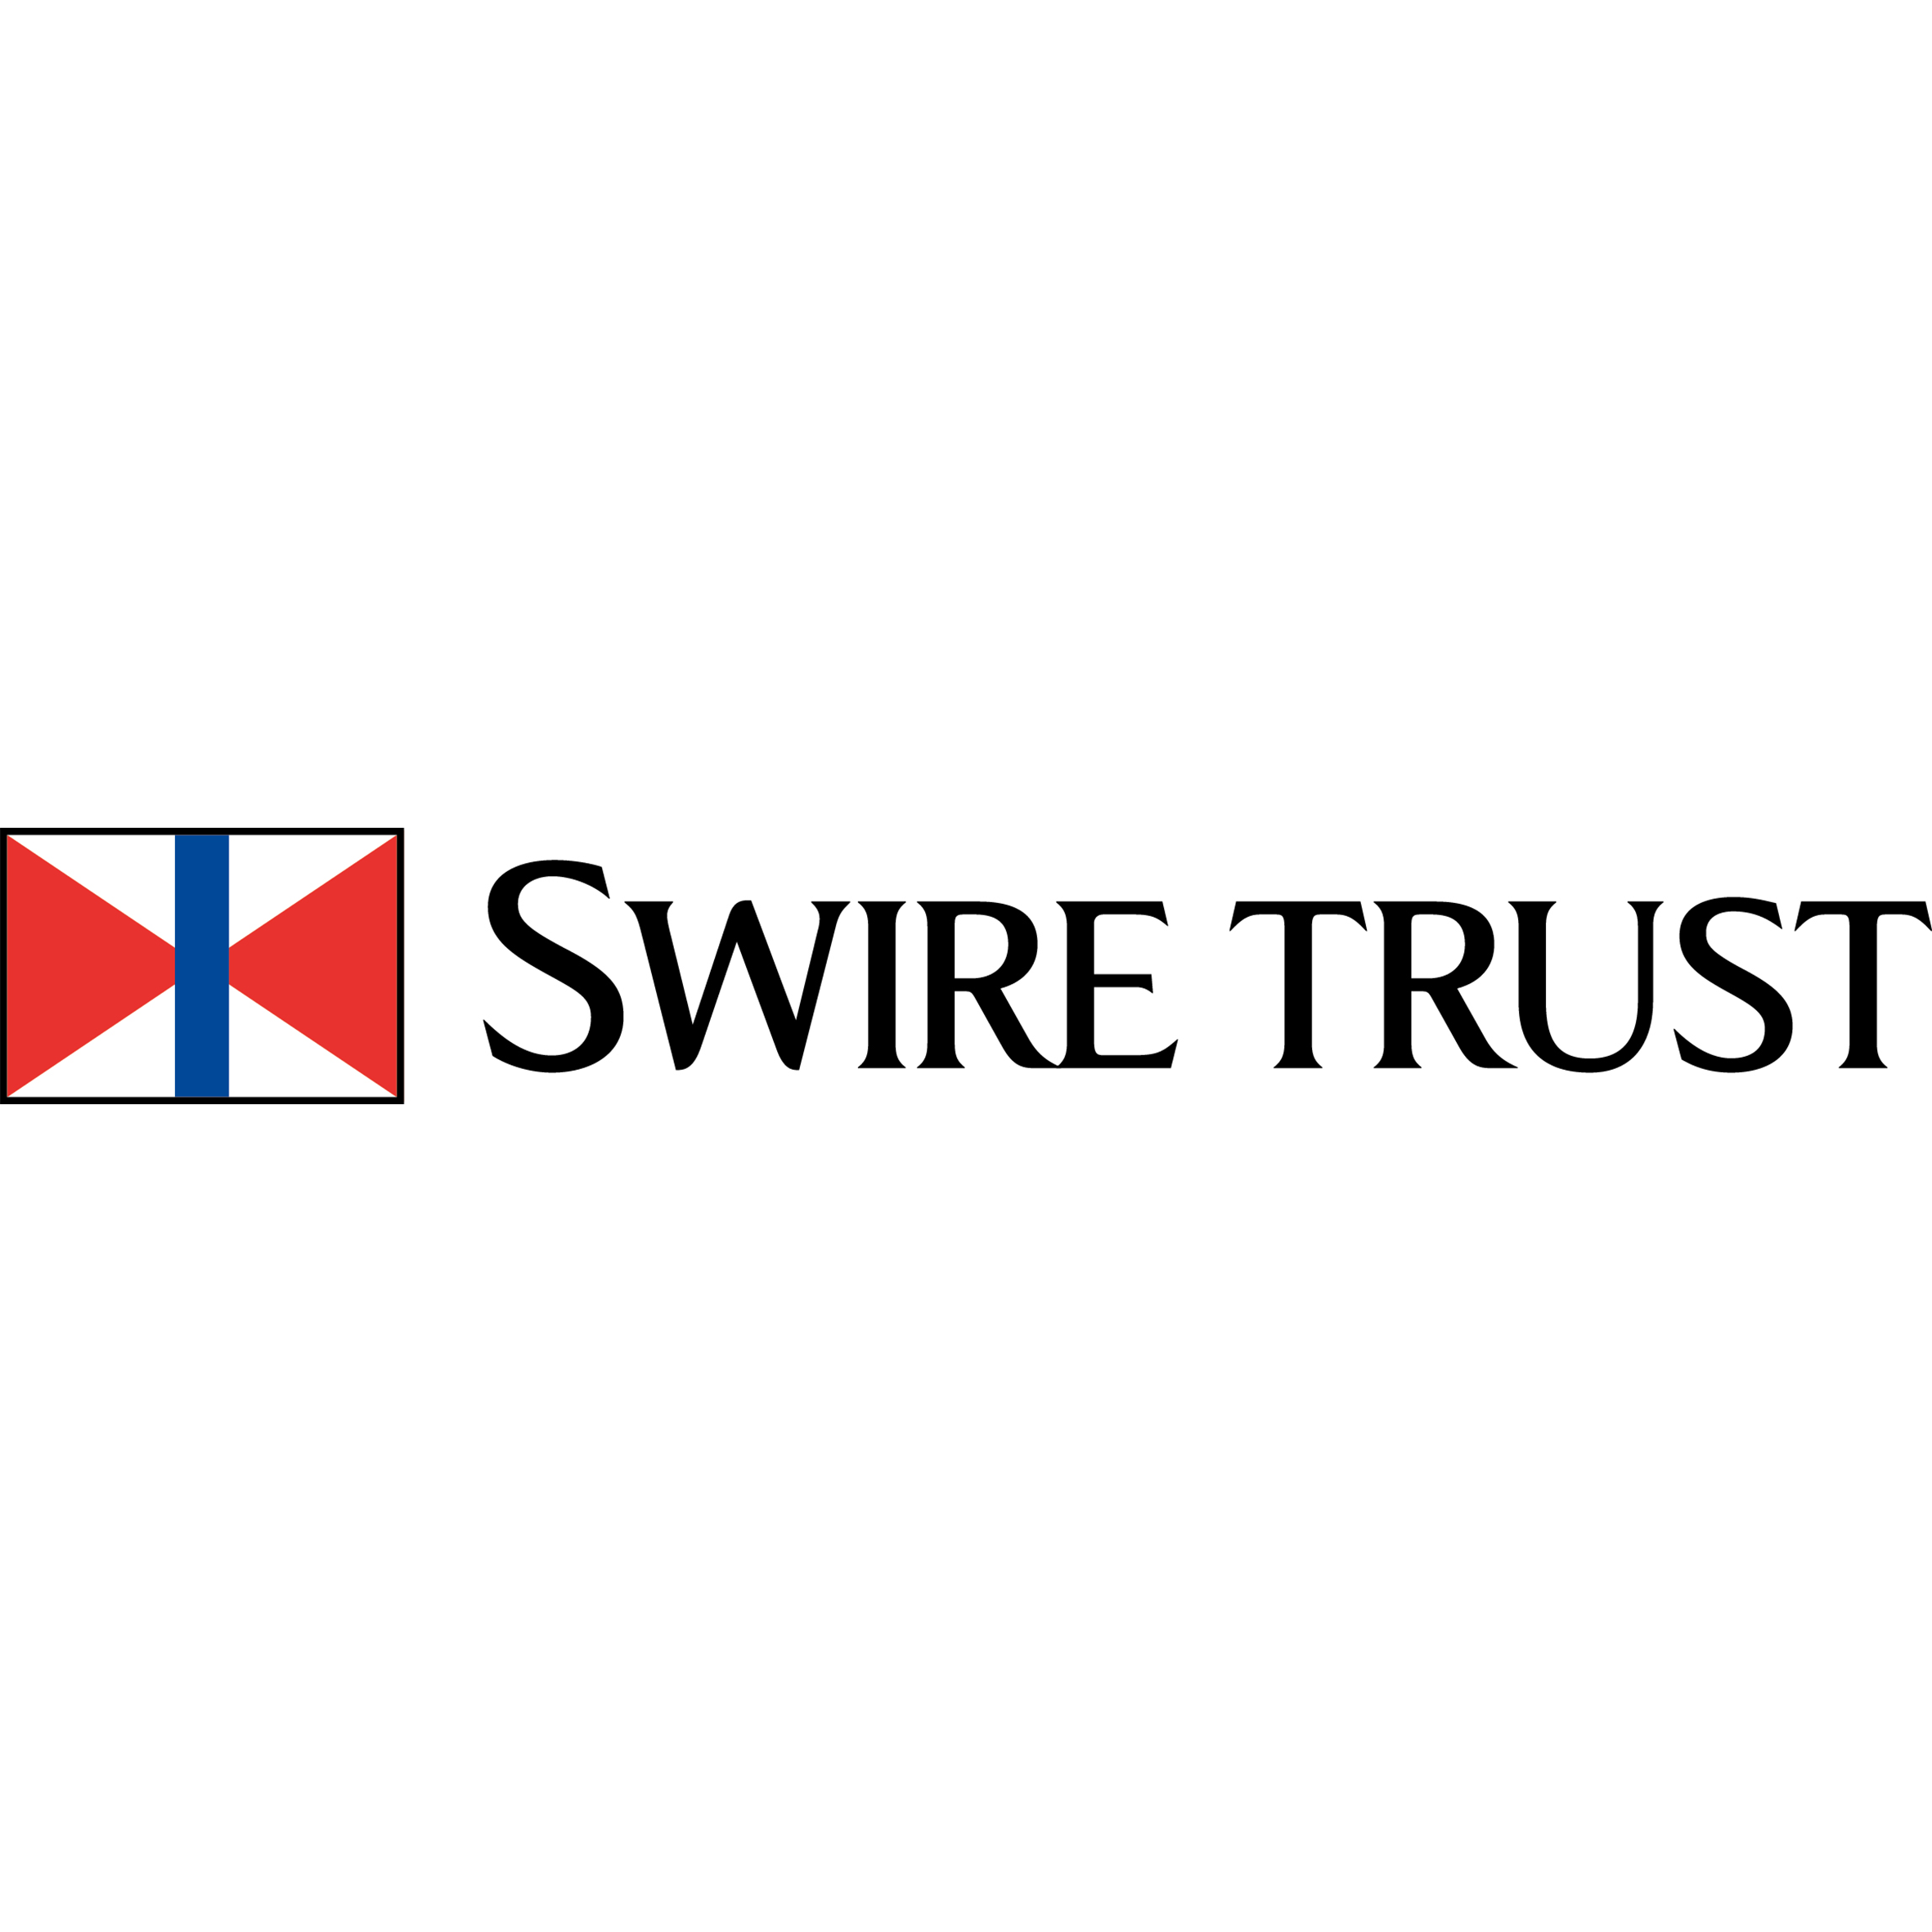 The Swire Group Charitable Trust (Swire Trust)